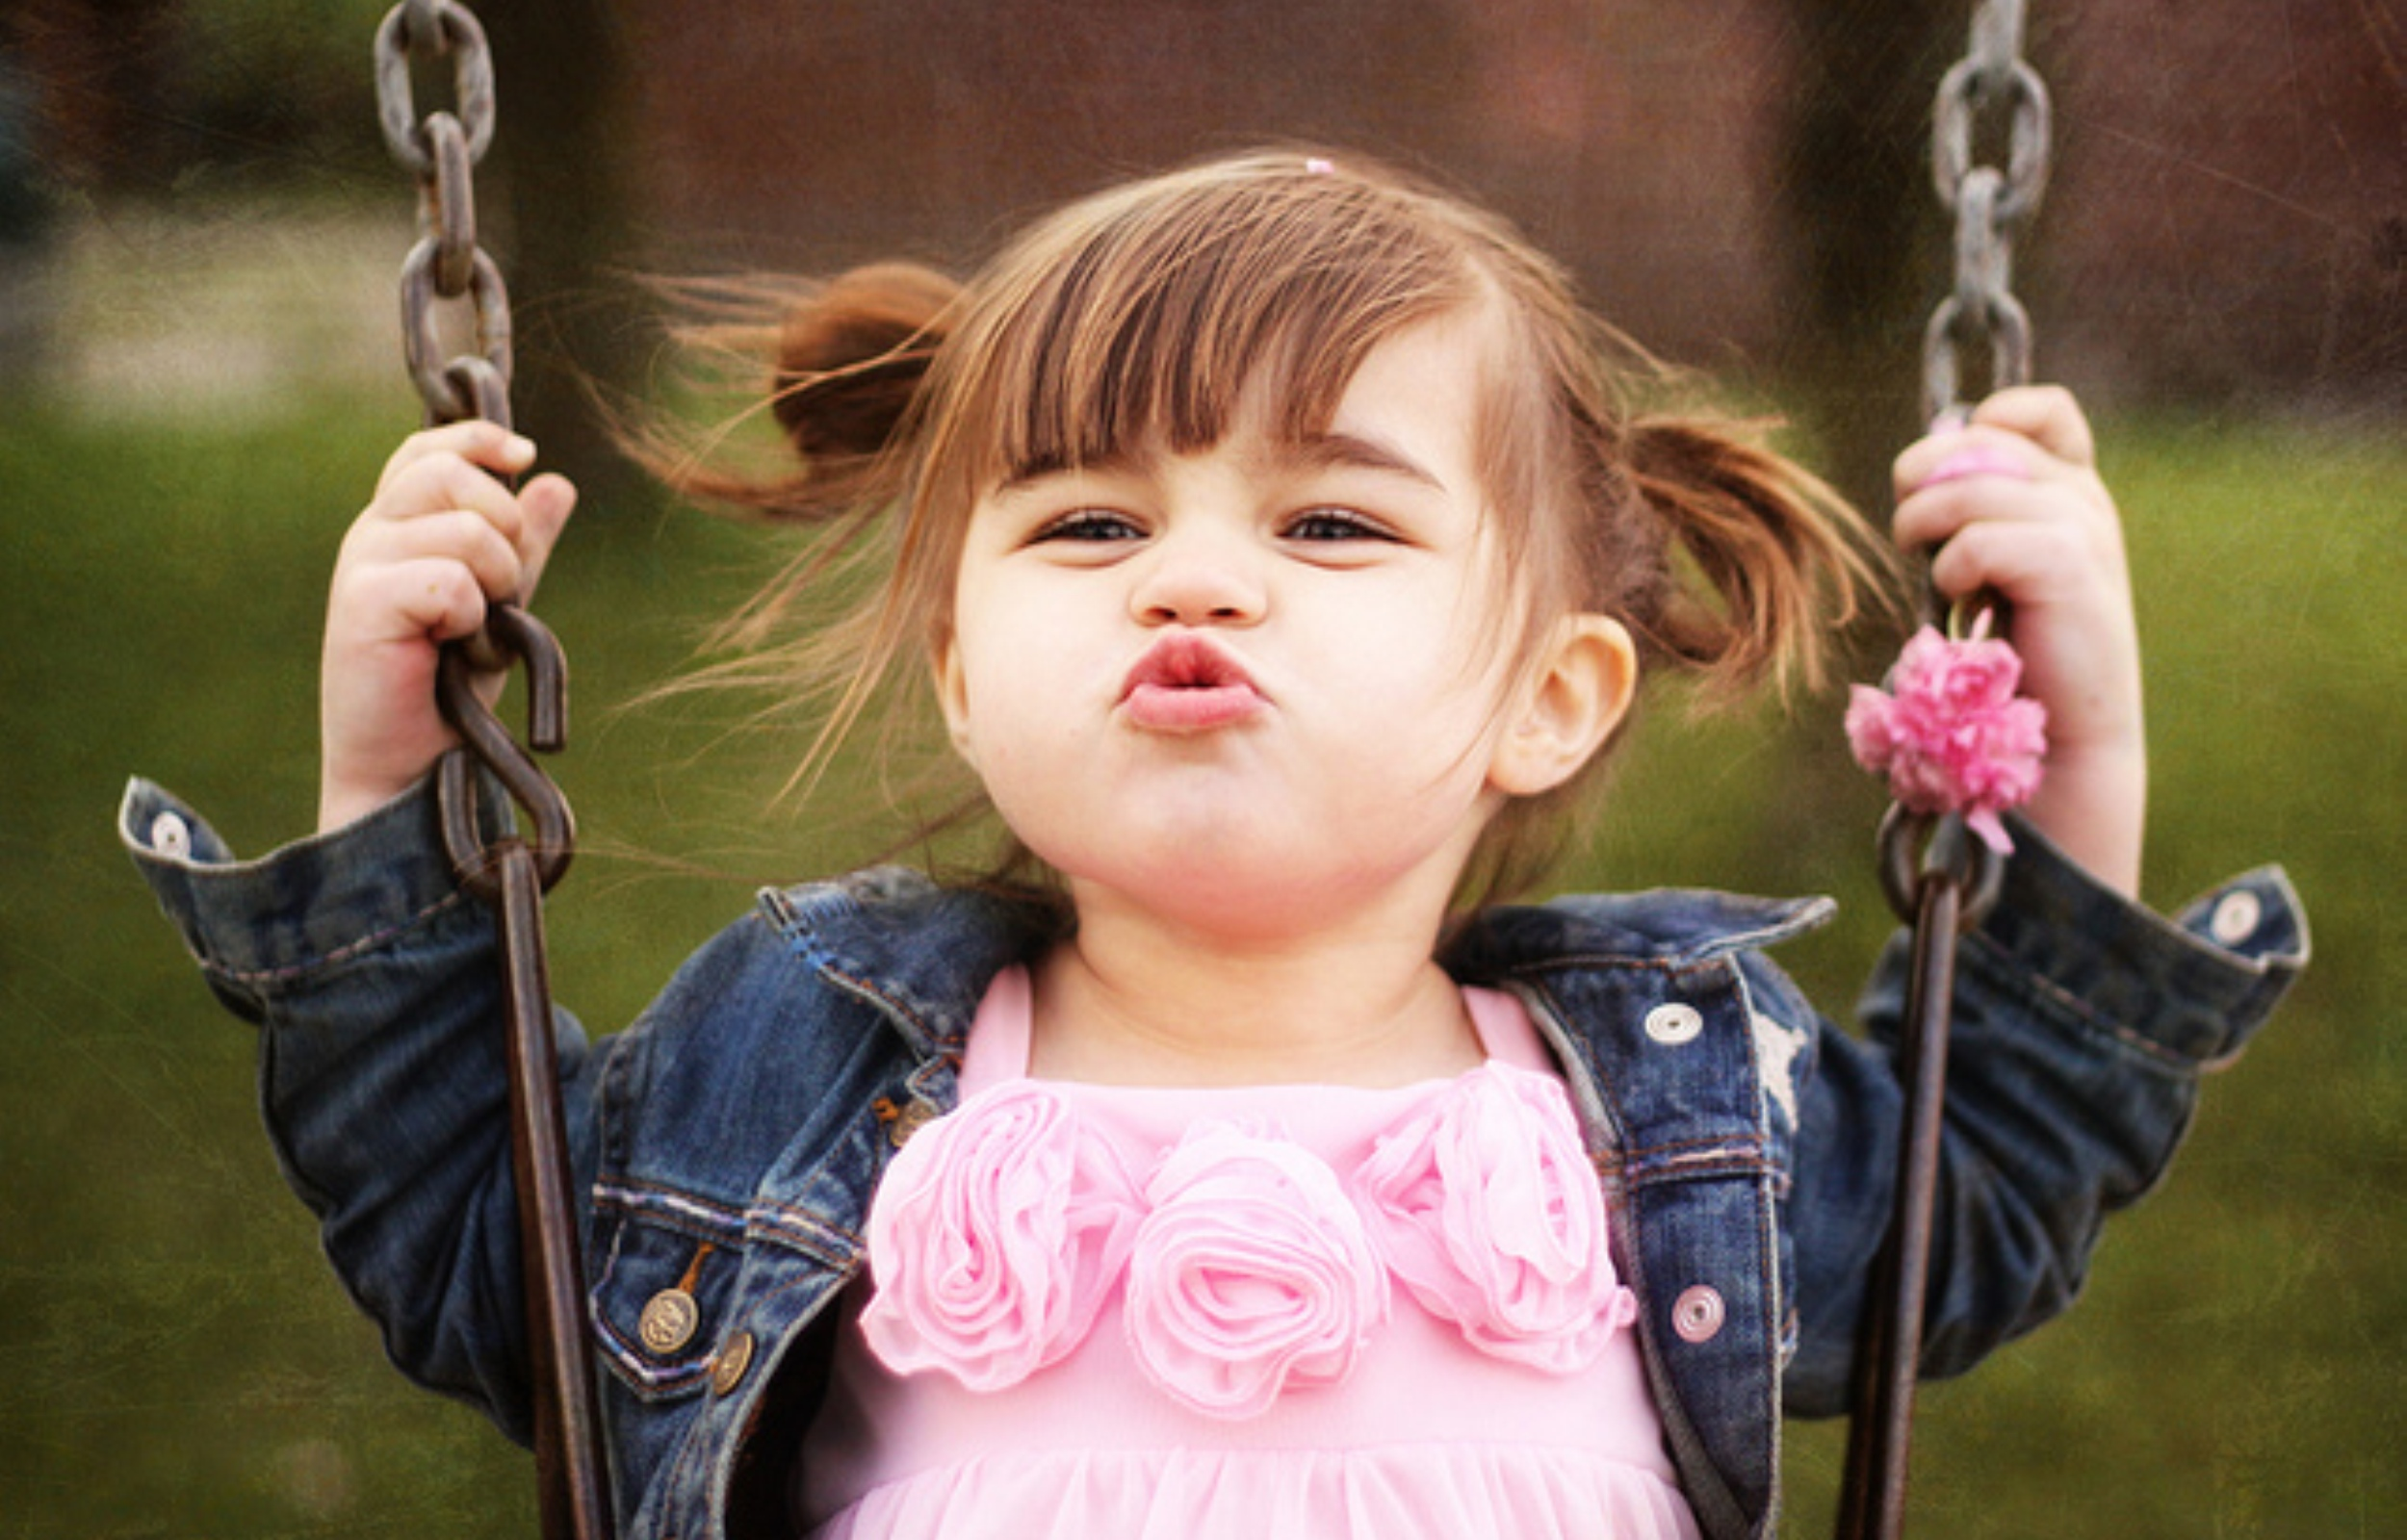 Cute Baby Girl Wallpapers The Art Mad Wallpapers 2500x1600